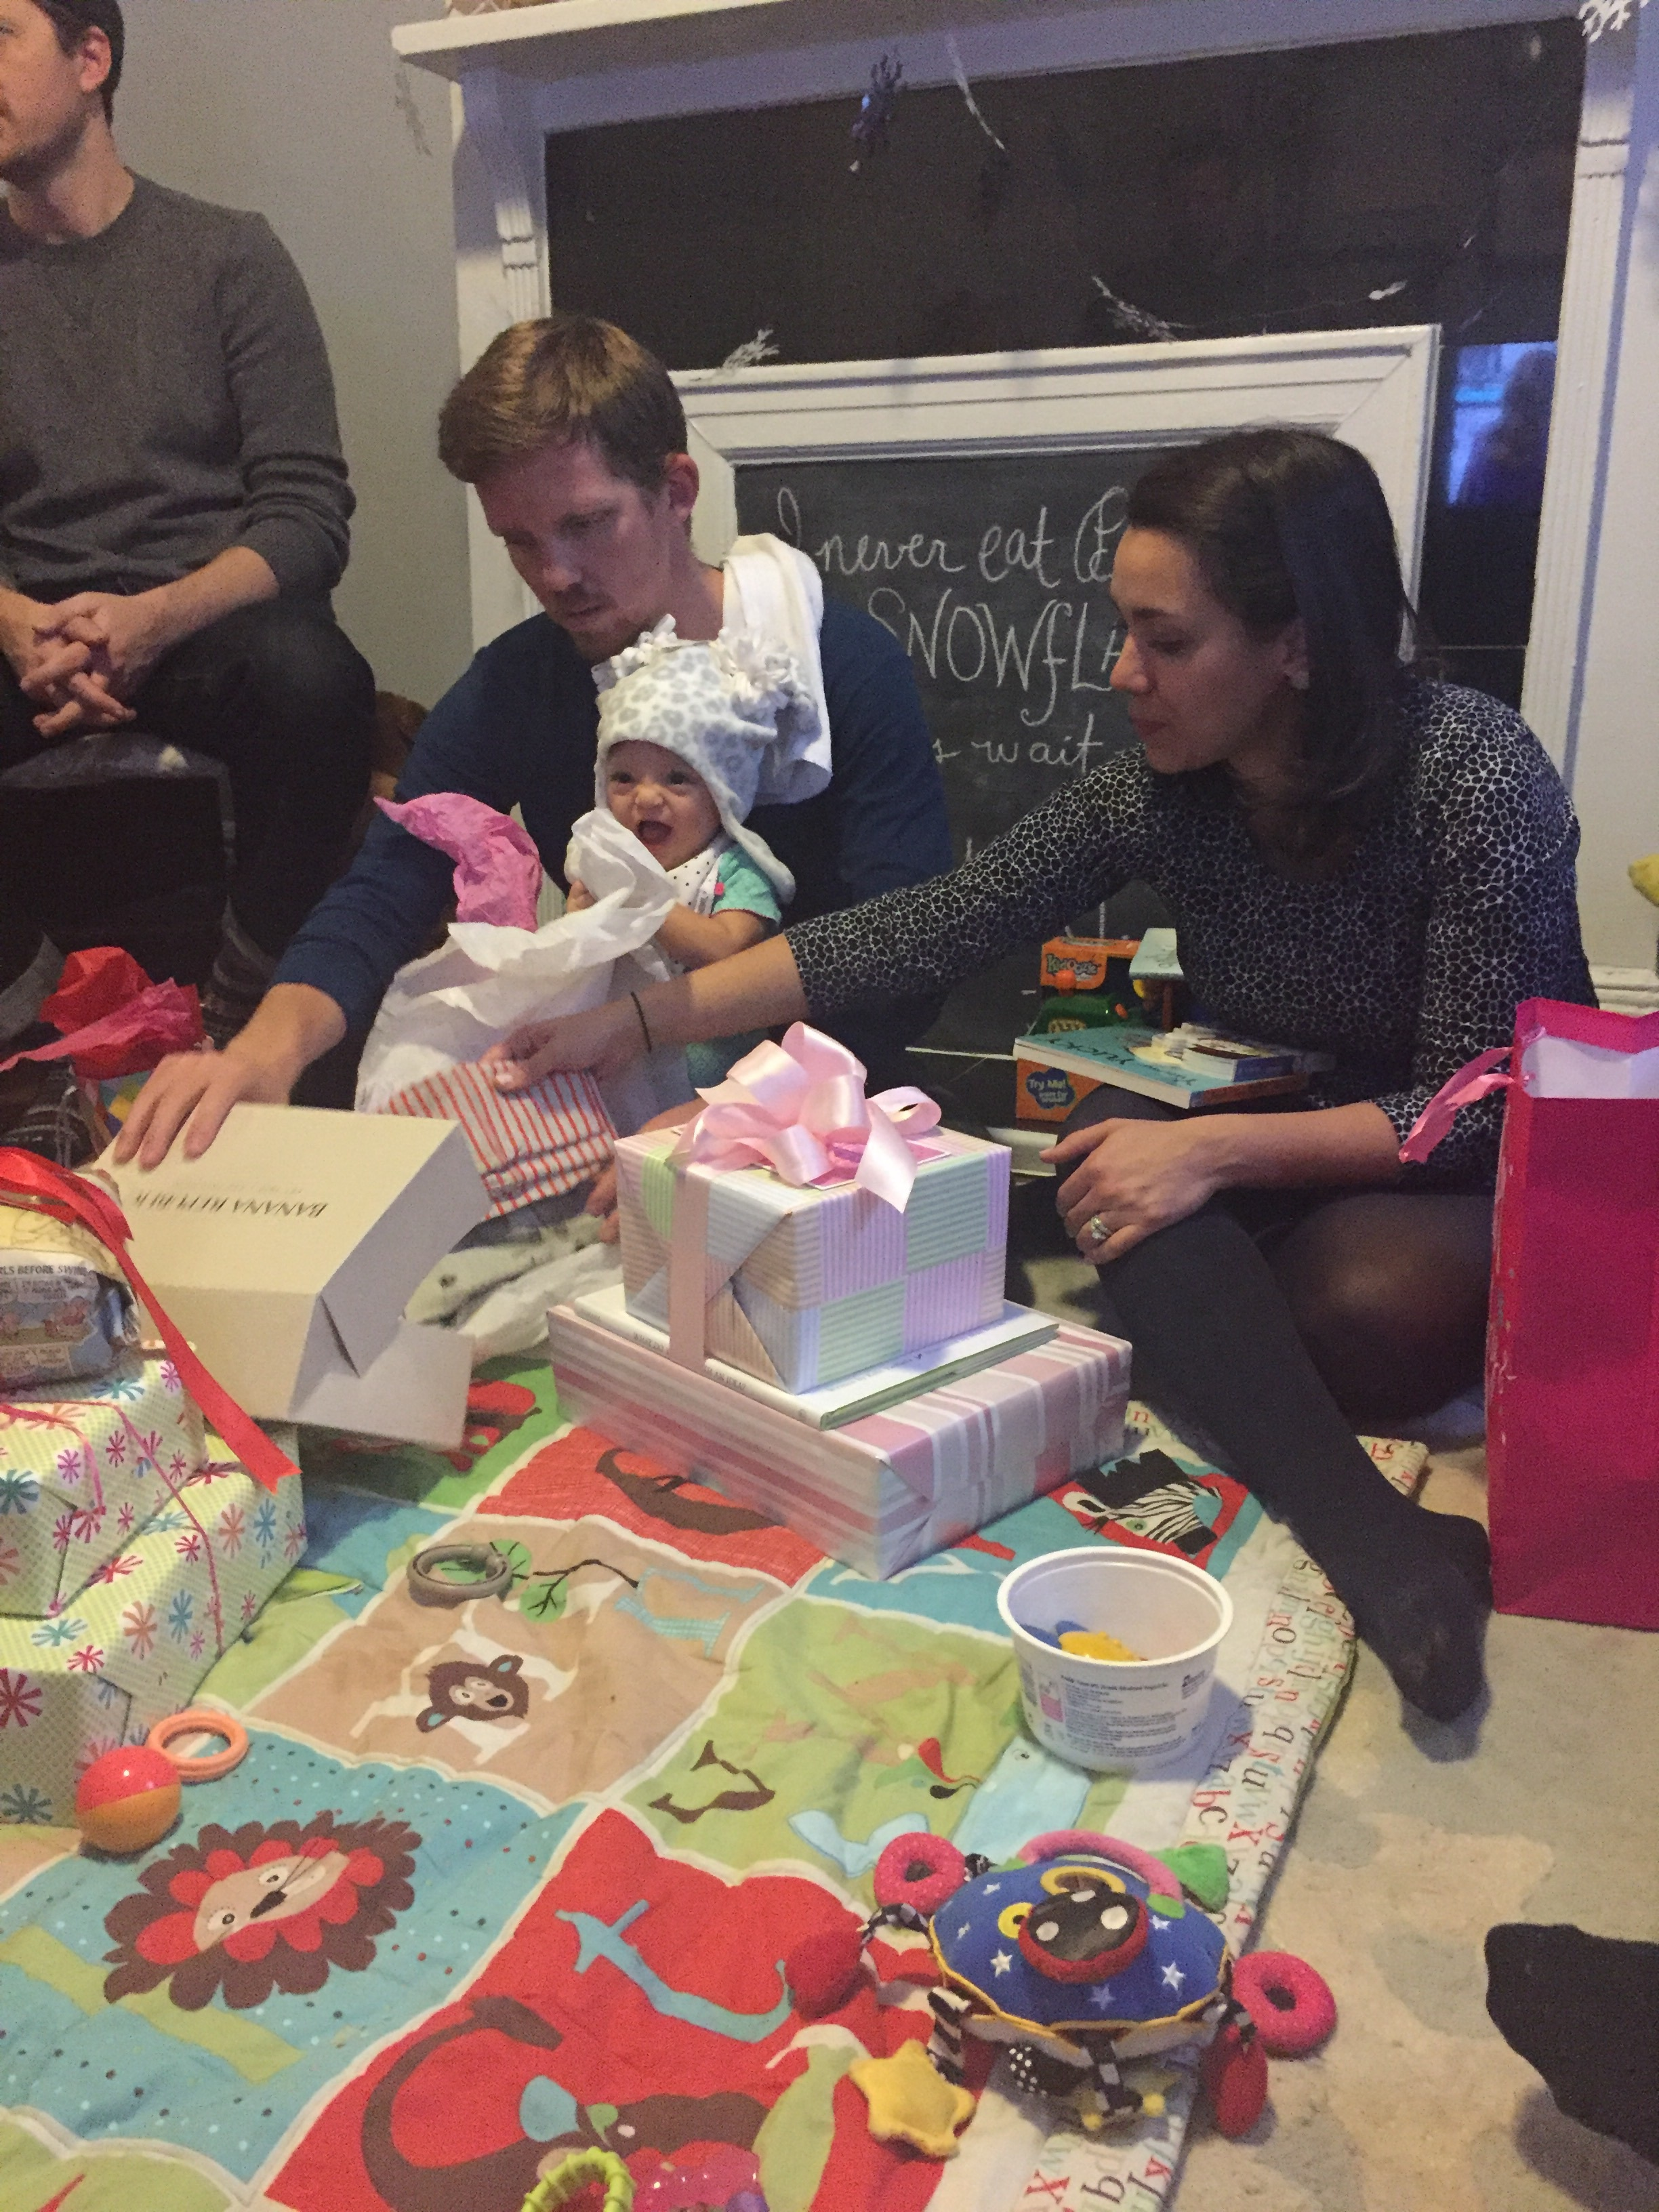 Preseeeeeents!!! Lucie learned very quickly how to help open her gifts ;).